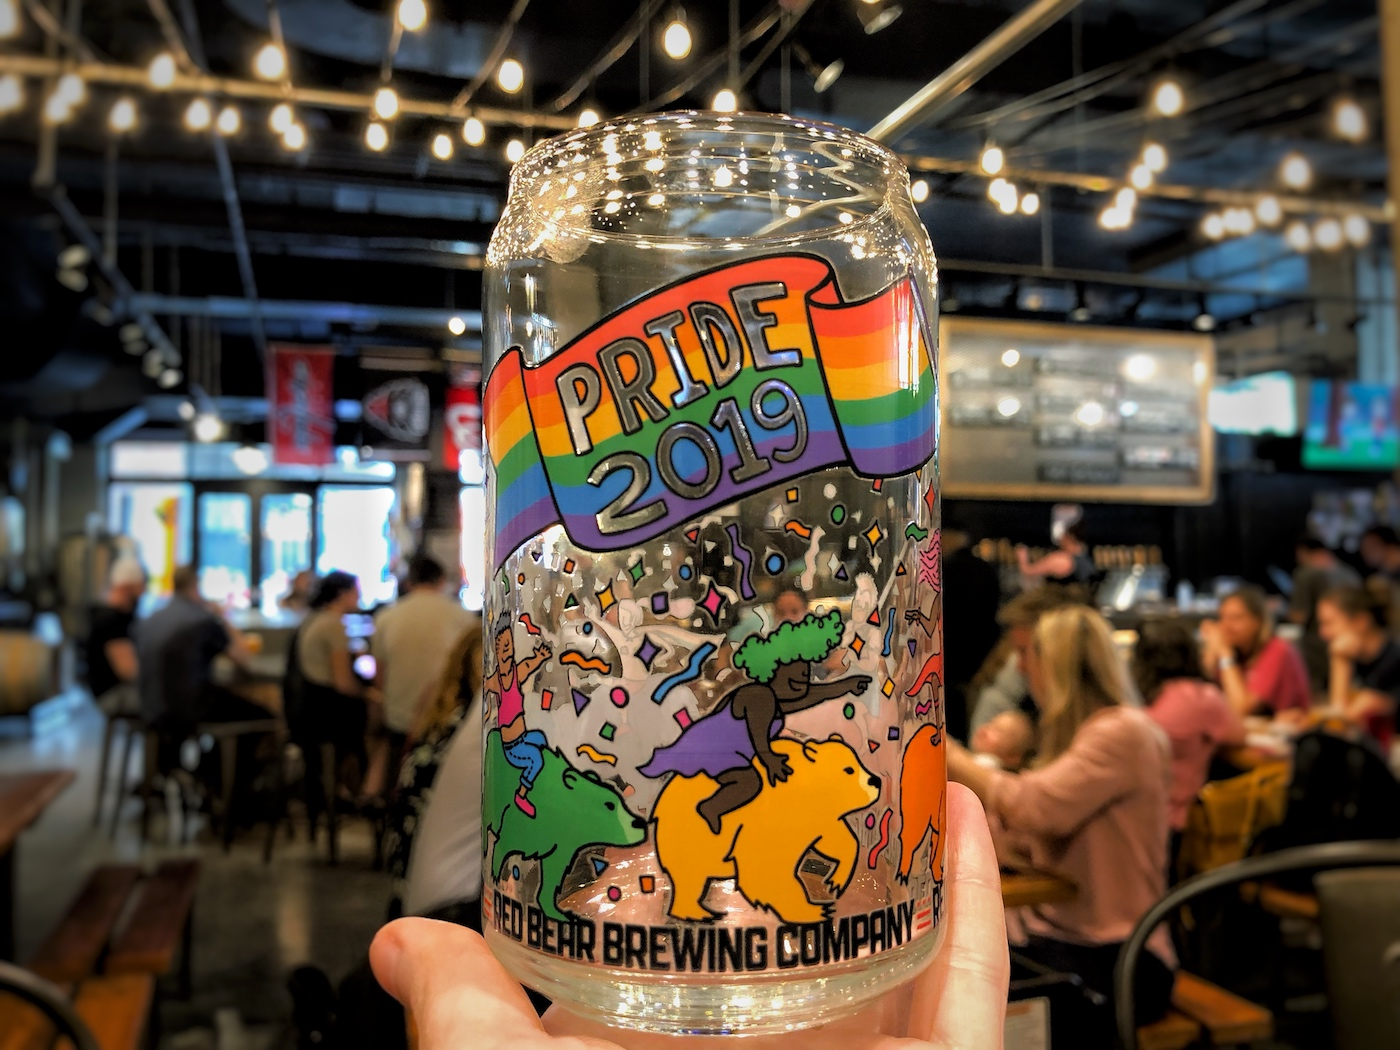 The 2019 Red Bear Pride beer glass with custom illustrations wrapping around it